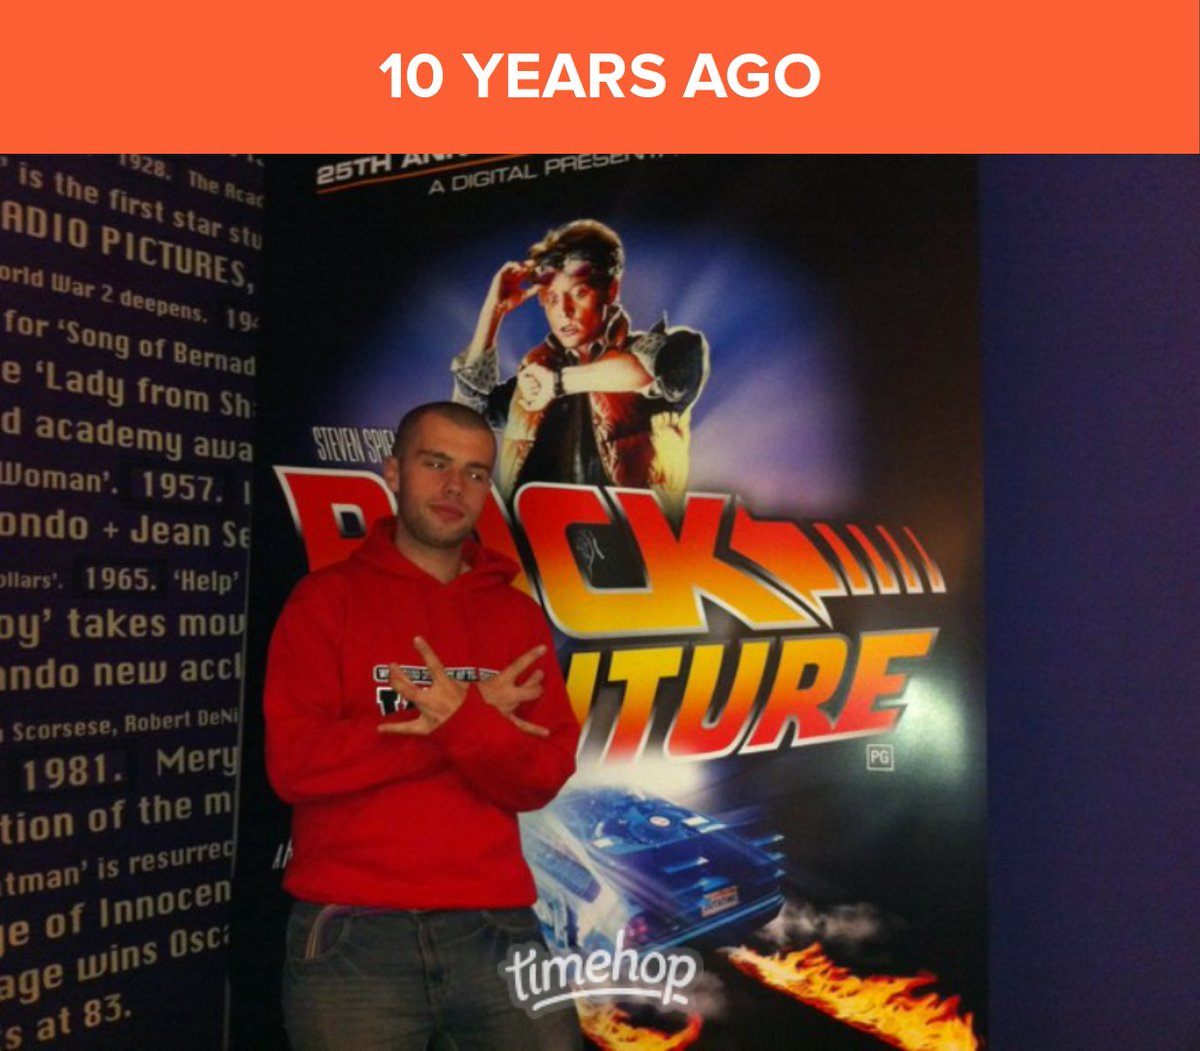 That time I got to see Back To The Future in the cinema for it's 25th anniversary. Holy shit, that means it's 35 years old now! 🎟🎬 #timehop #throwback #backtothefuture #bttf #delorean #martymcfly #docbrown #classic